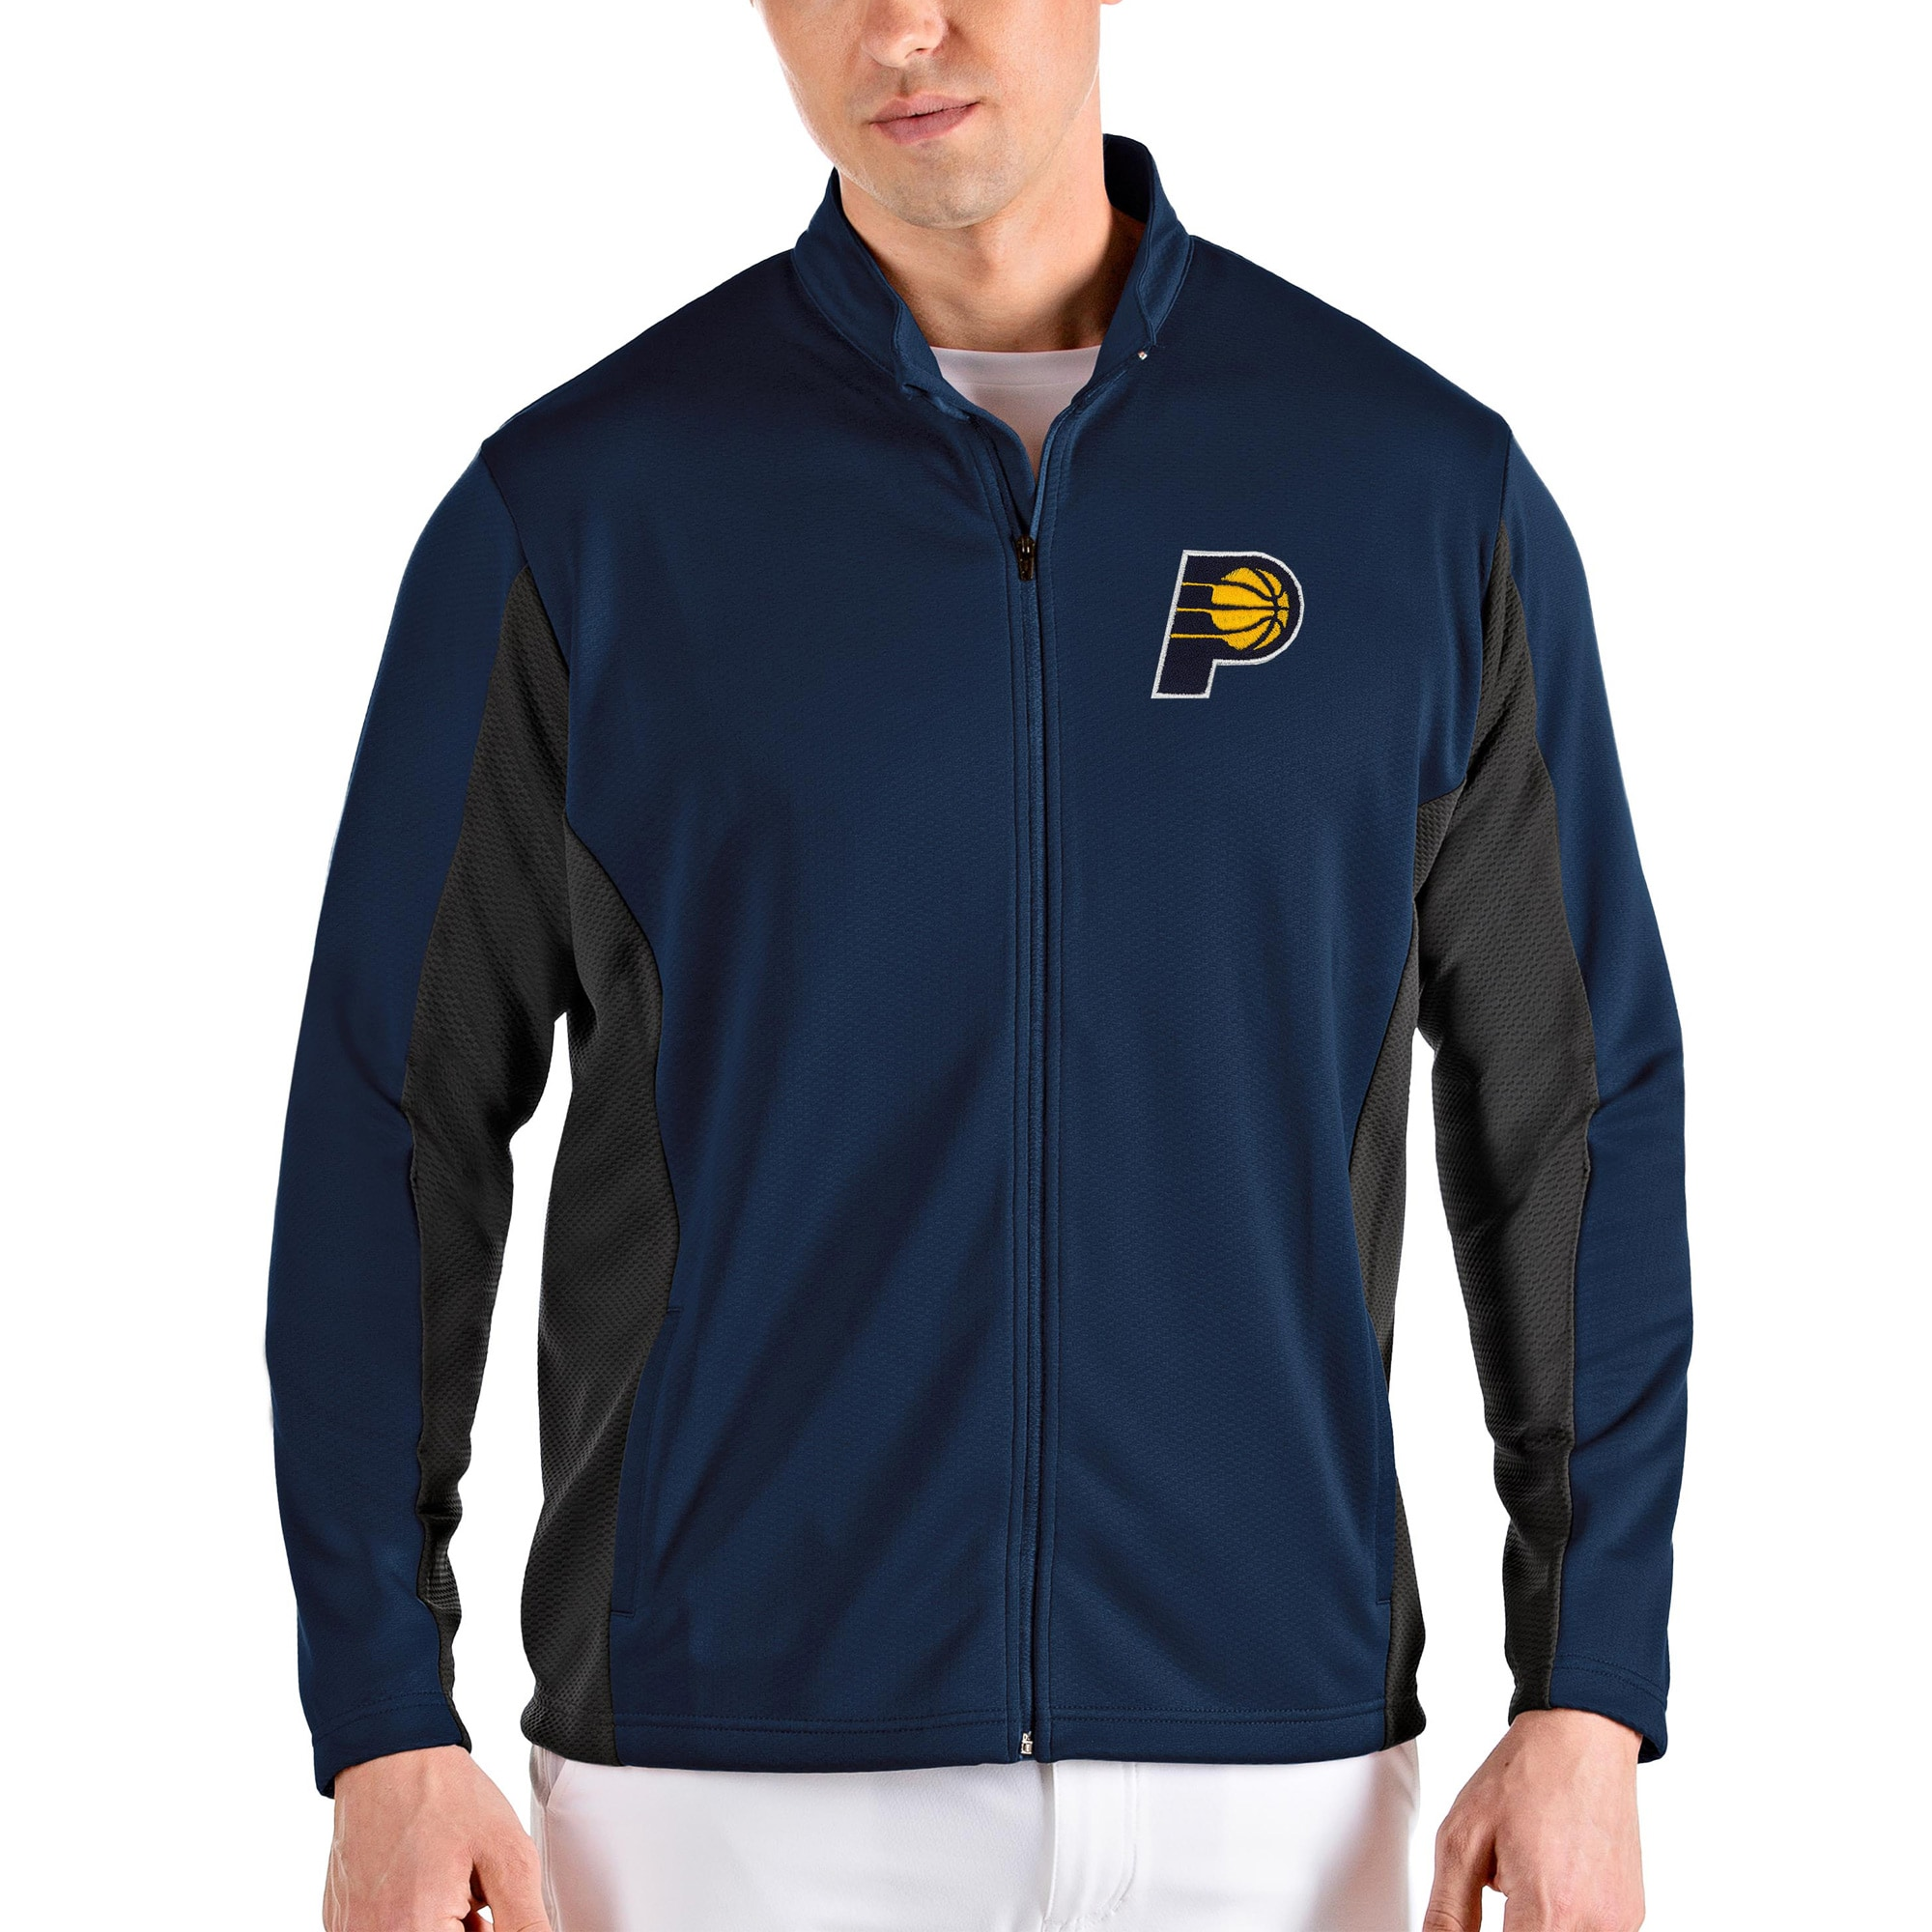 Indiana Pacers Antigua Passage Full-Zip Jacket - Navy/Gray